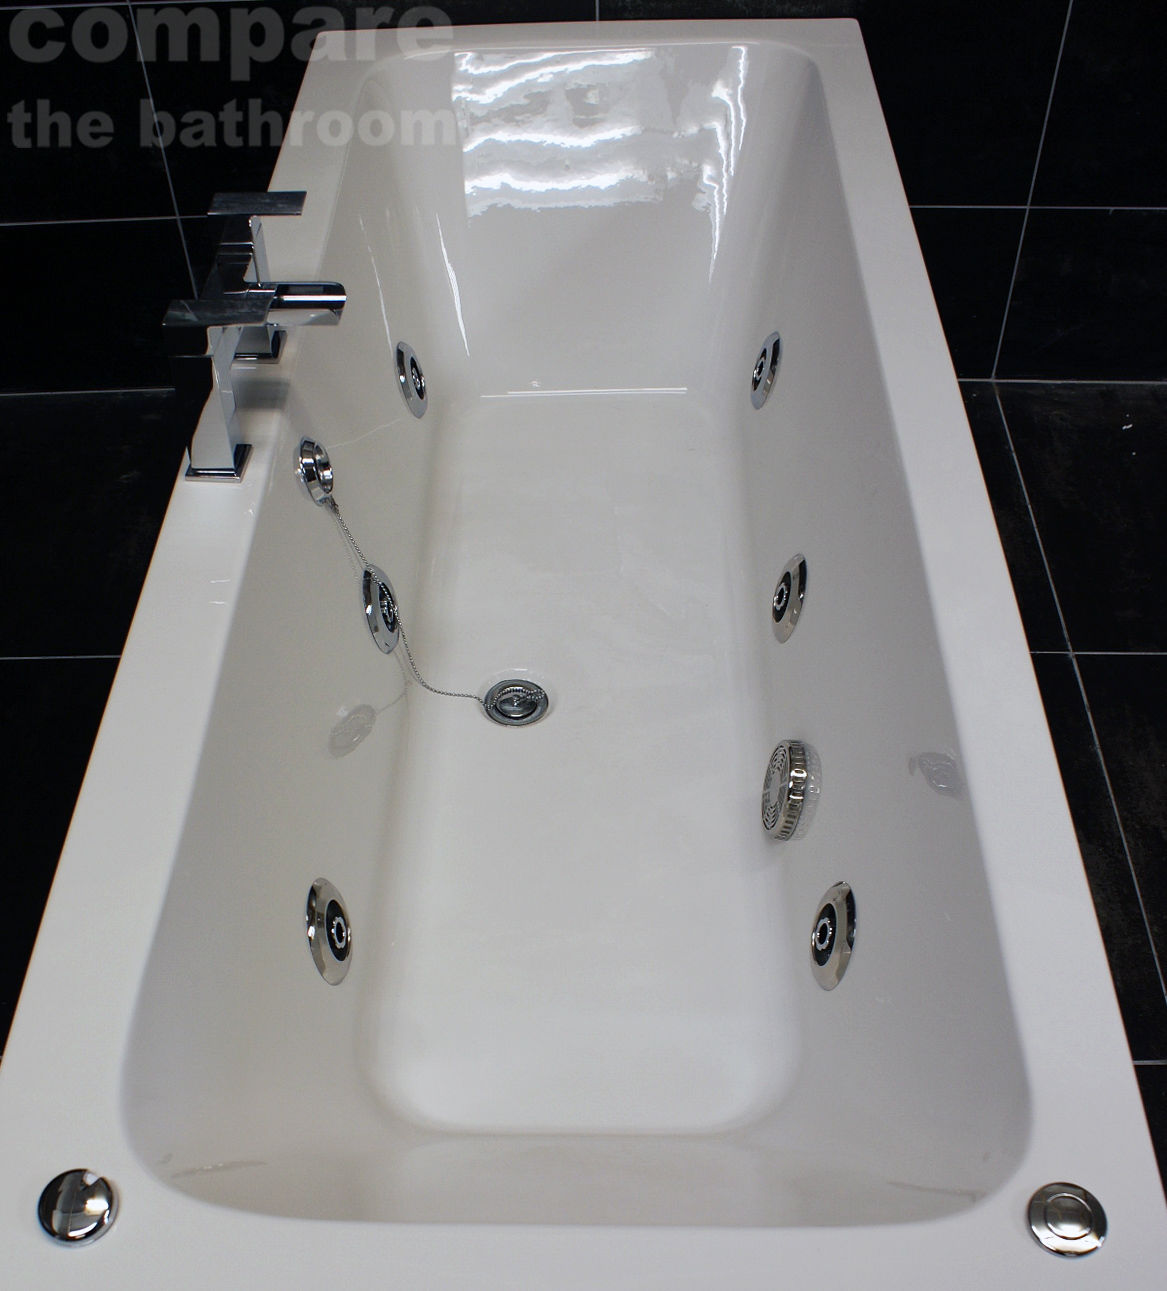 1800 x 800mm Double Ended Square Bath + 6 Jet Whirlpool Spa ...